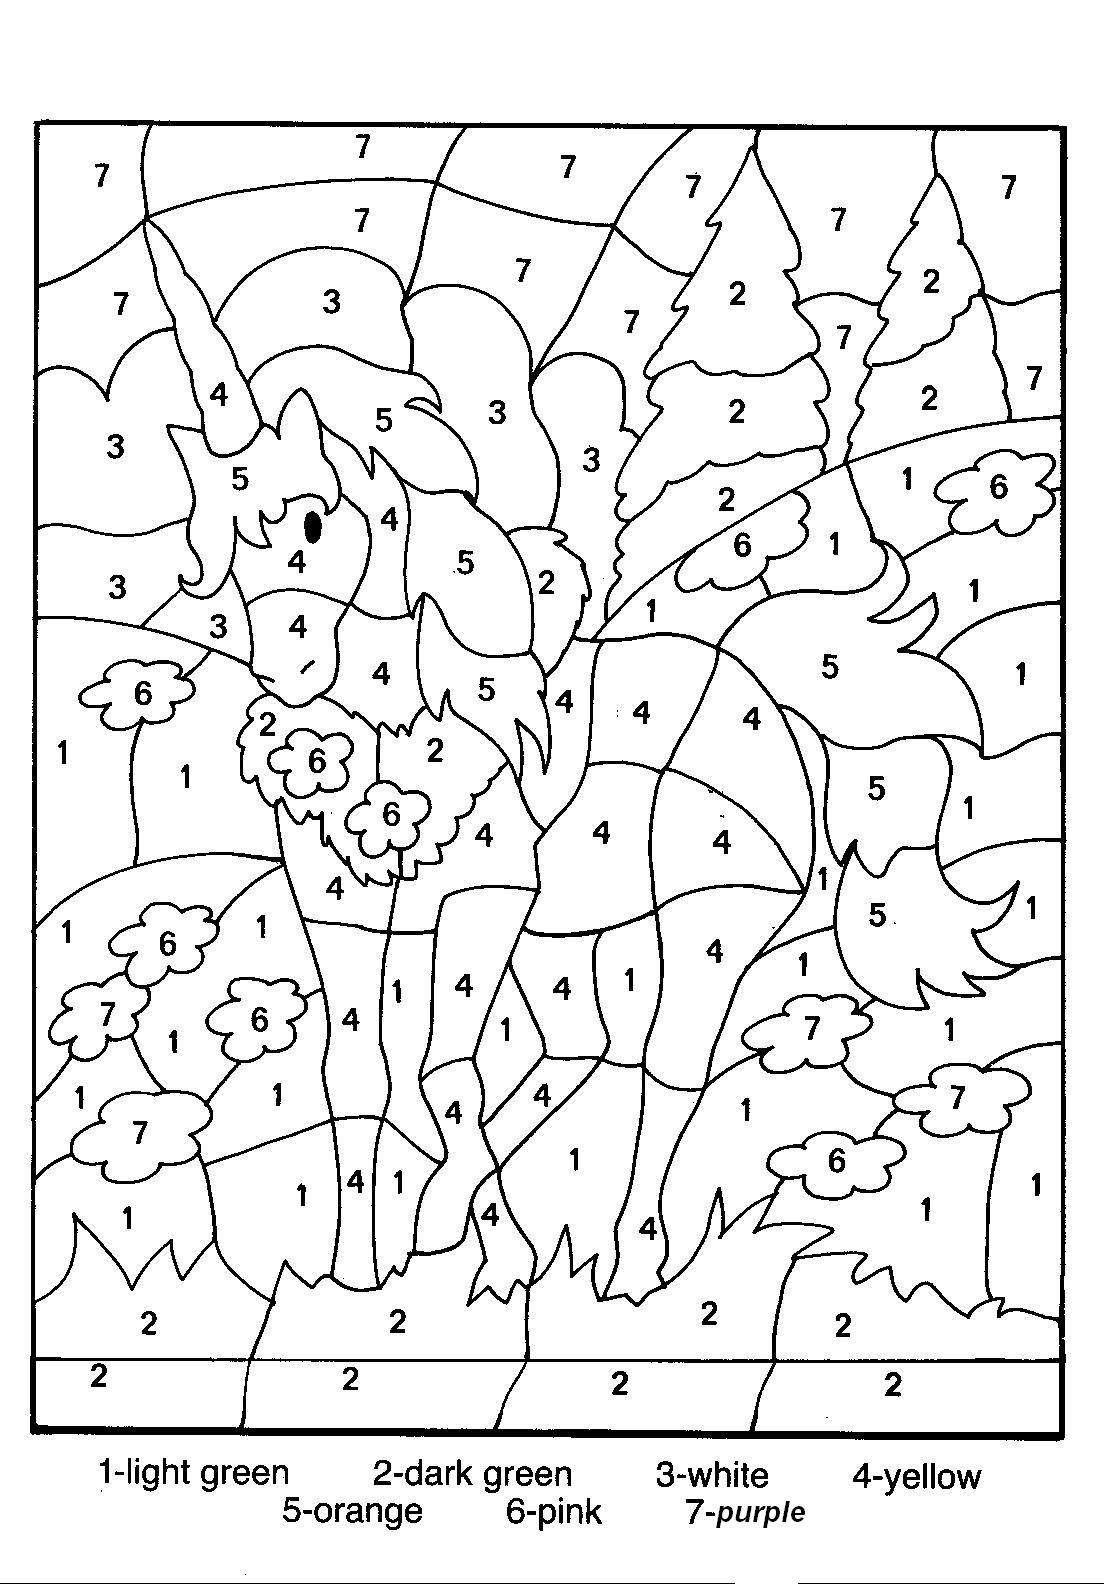 Free Printable Colornumber Coloring Pages | Colornumber - Free Printable Color By Number For Adults